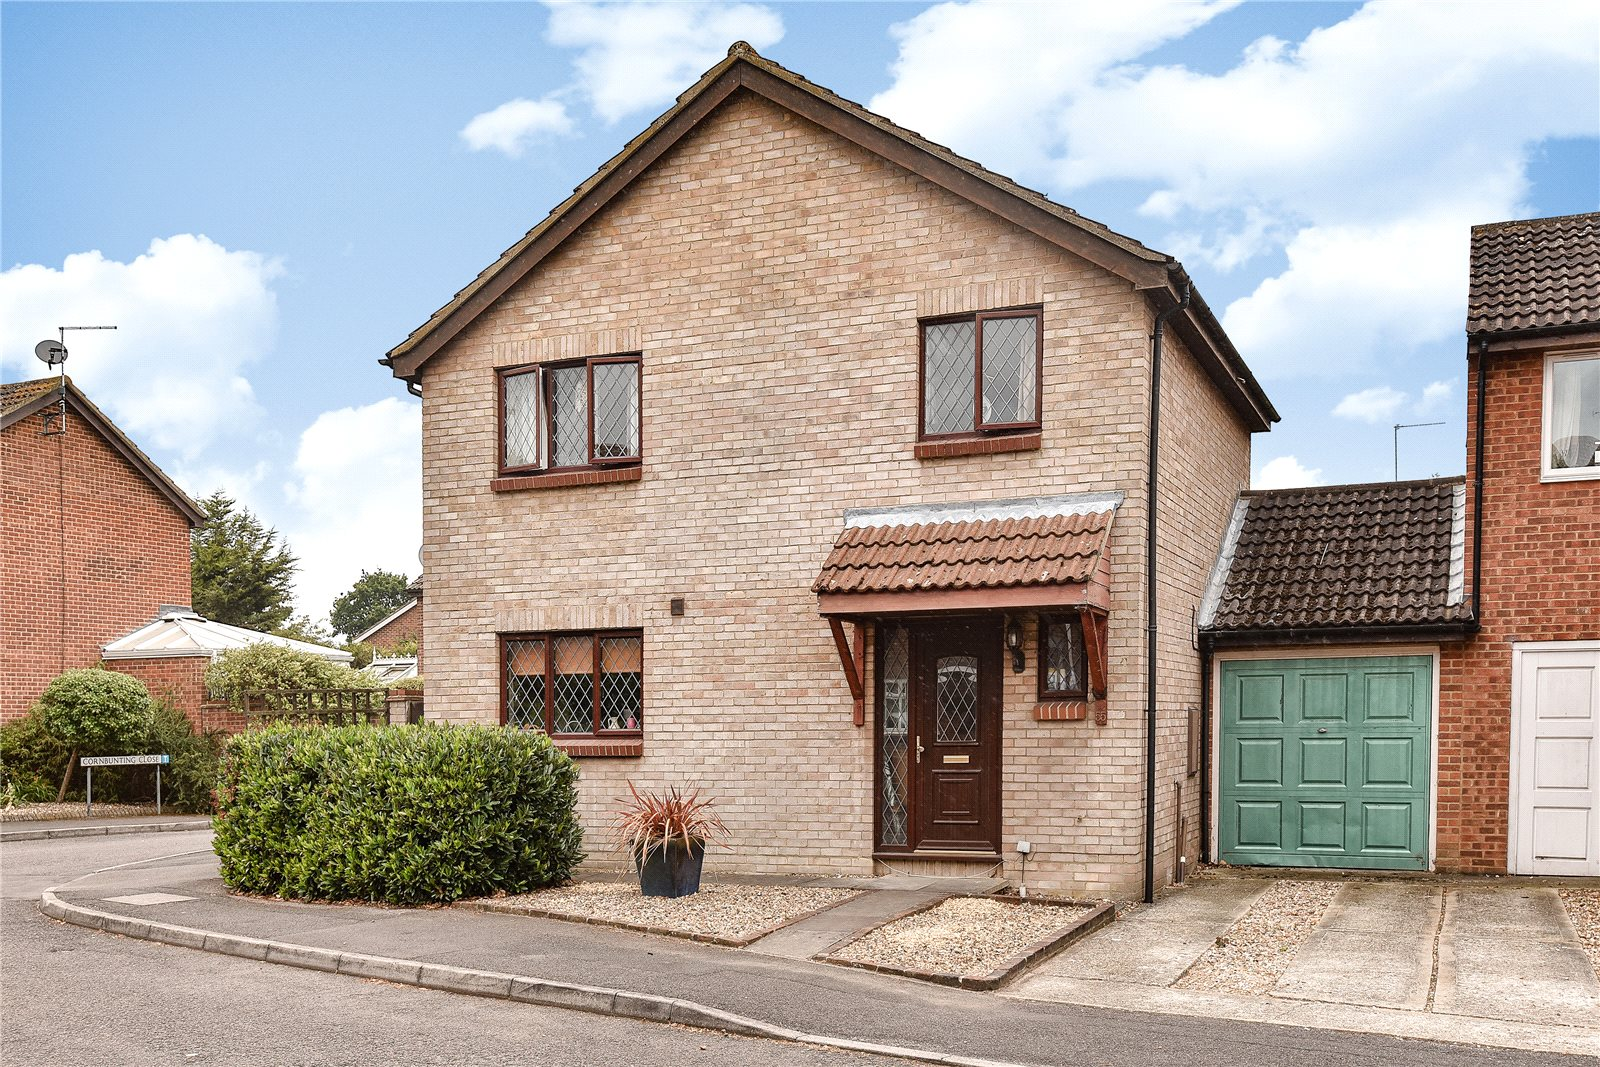 4 Bedrooms Detached House for sale in Avocet Crescent, College Town, Sandhurst, Berkshire, GU47